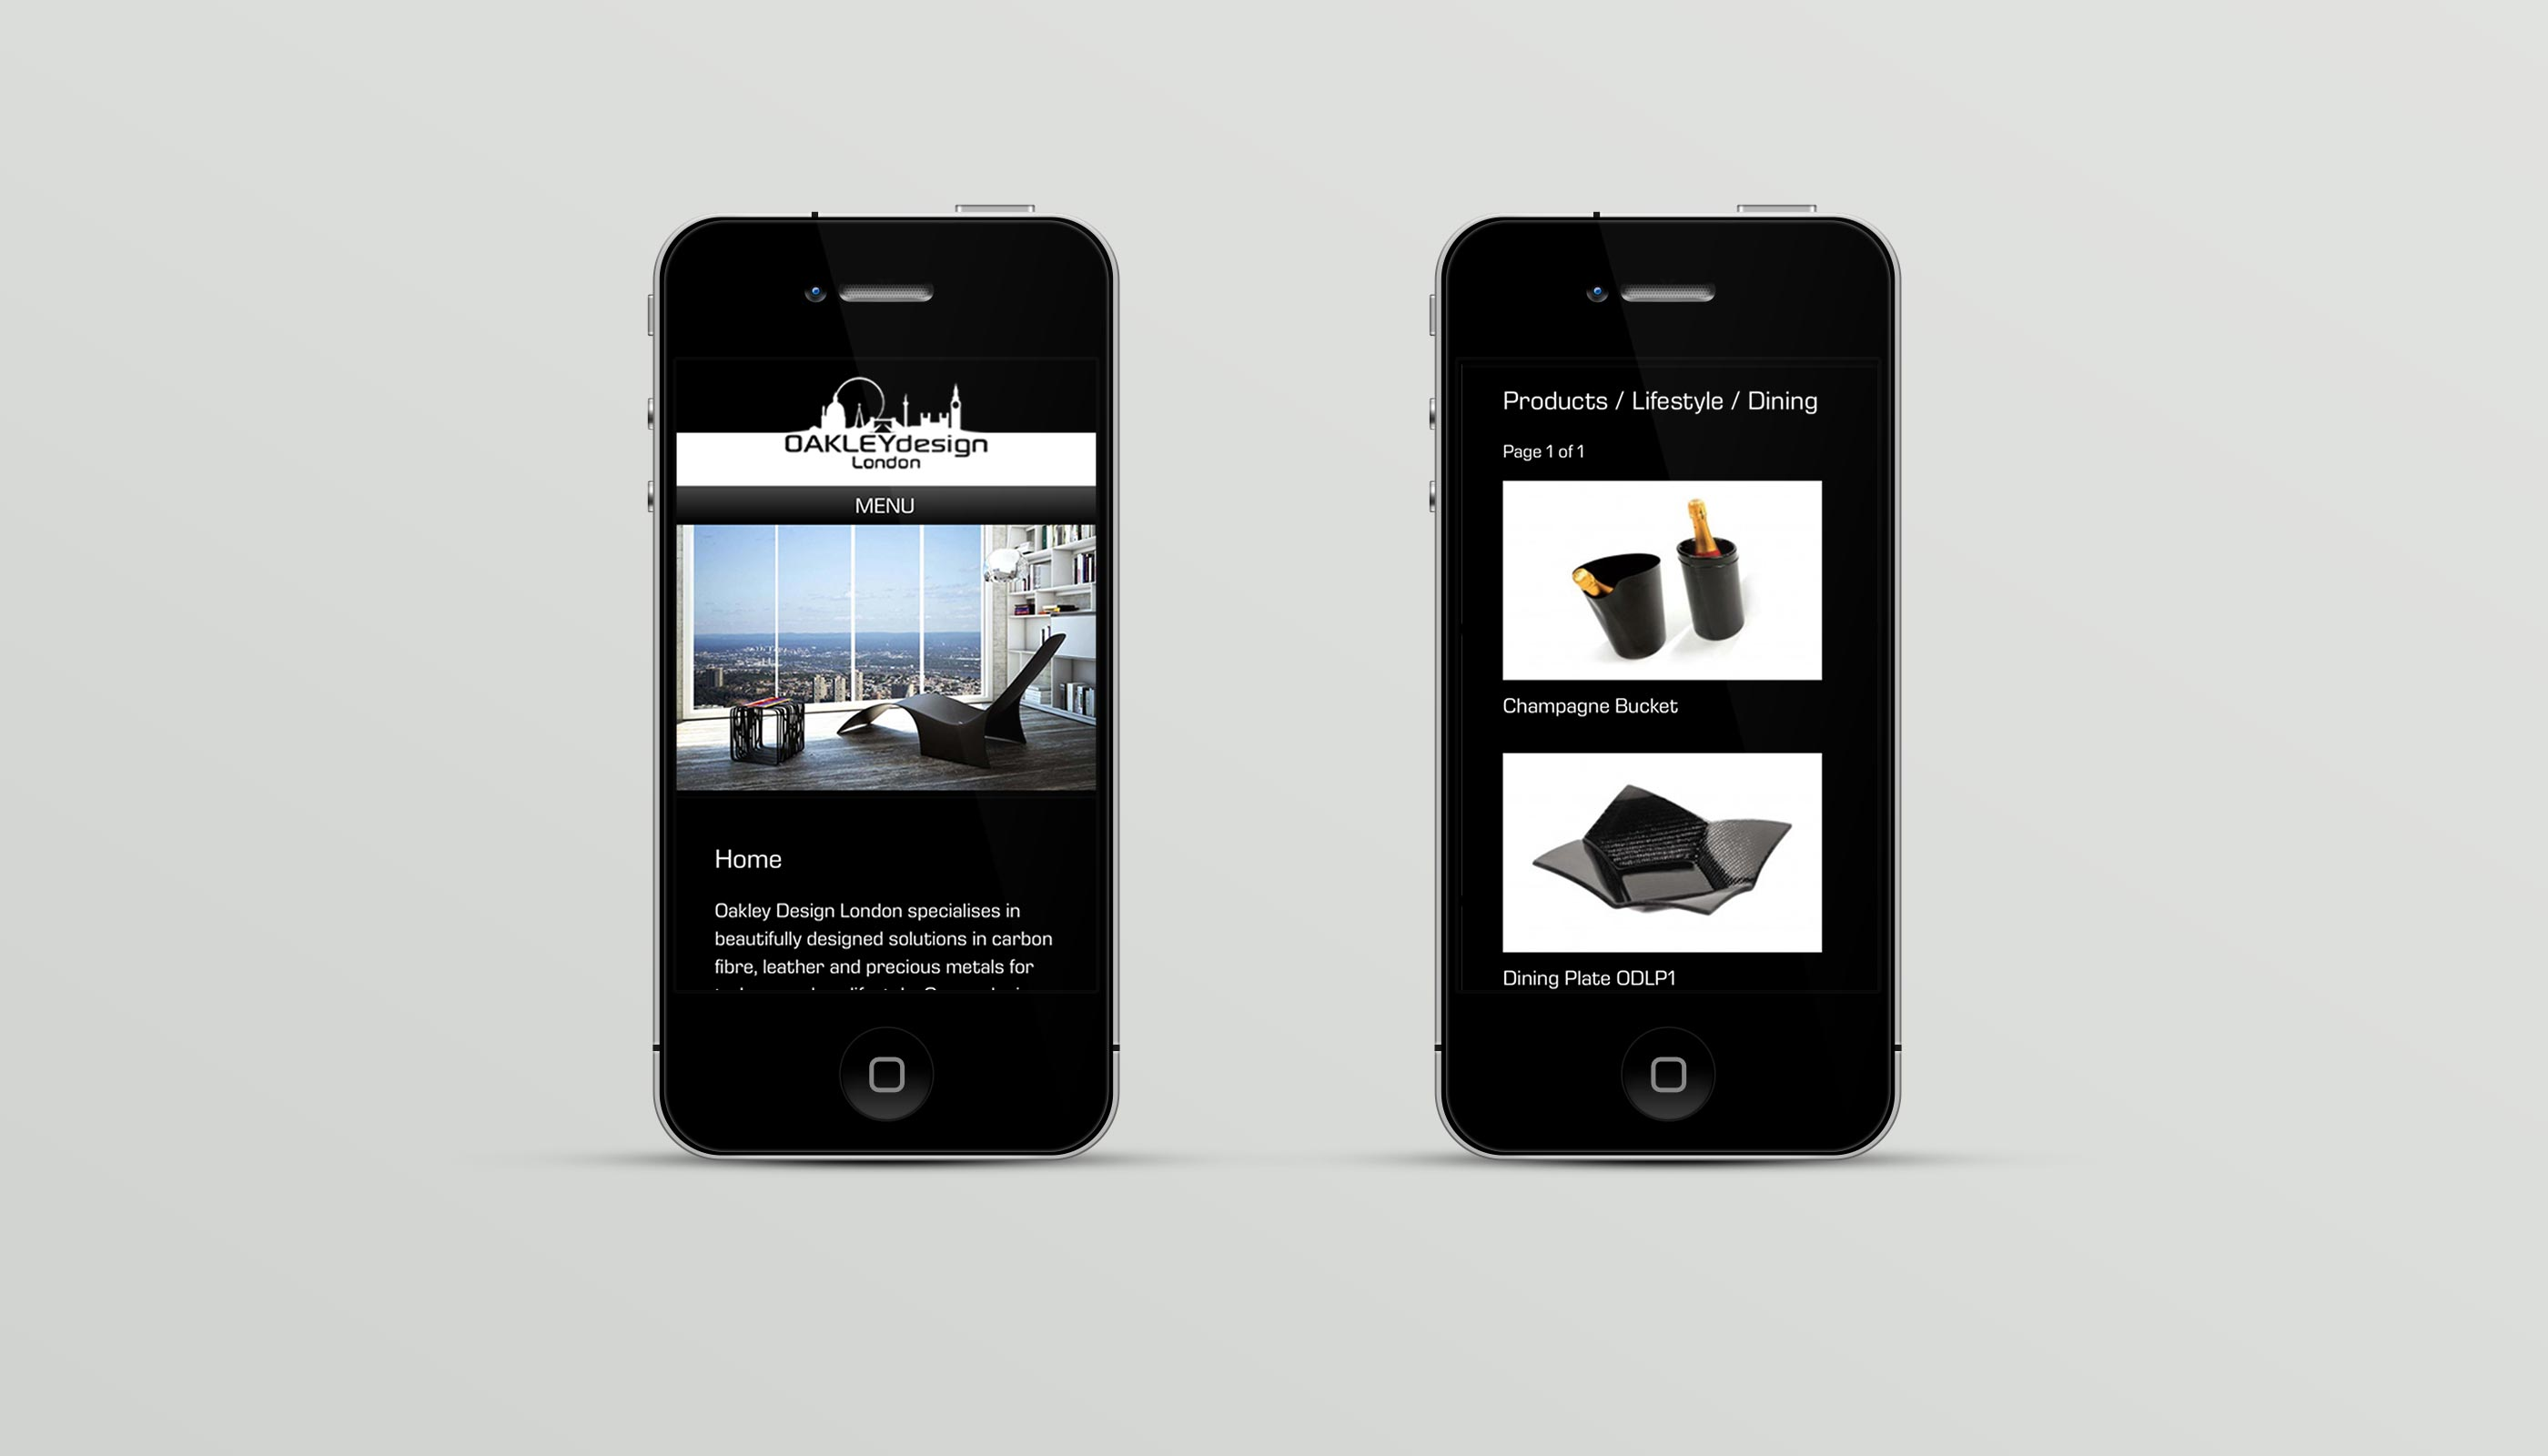 Responsive mobile website design for luxury goods retailer Oakley Design London.